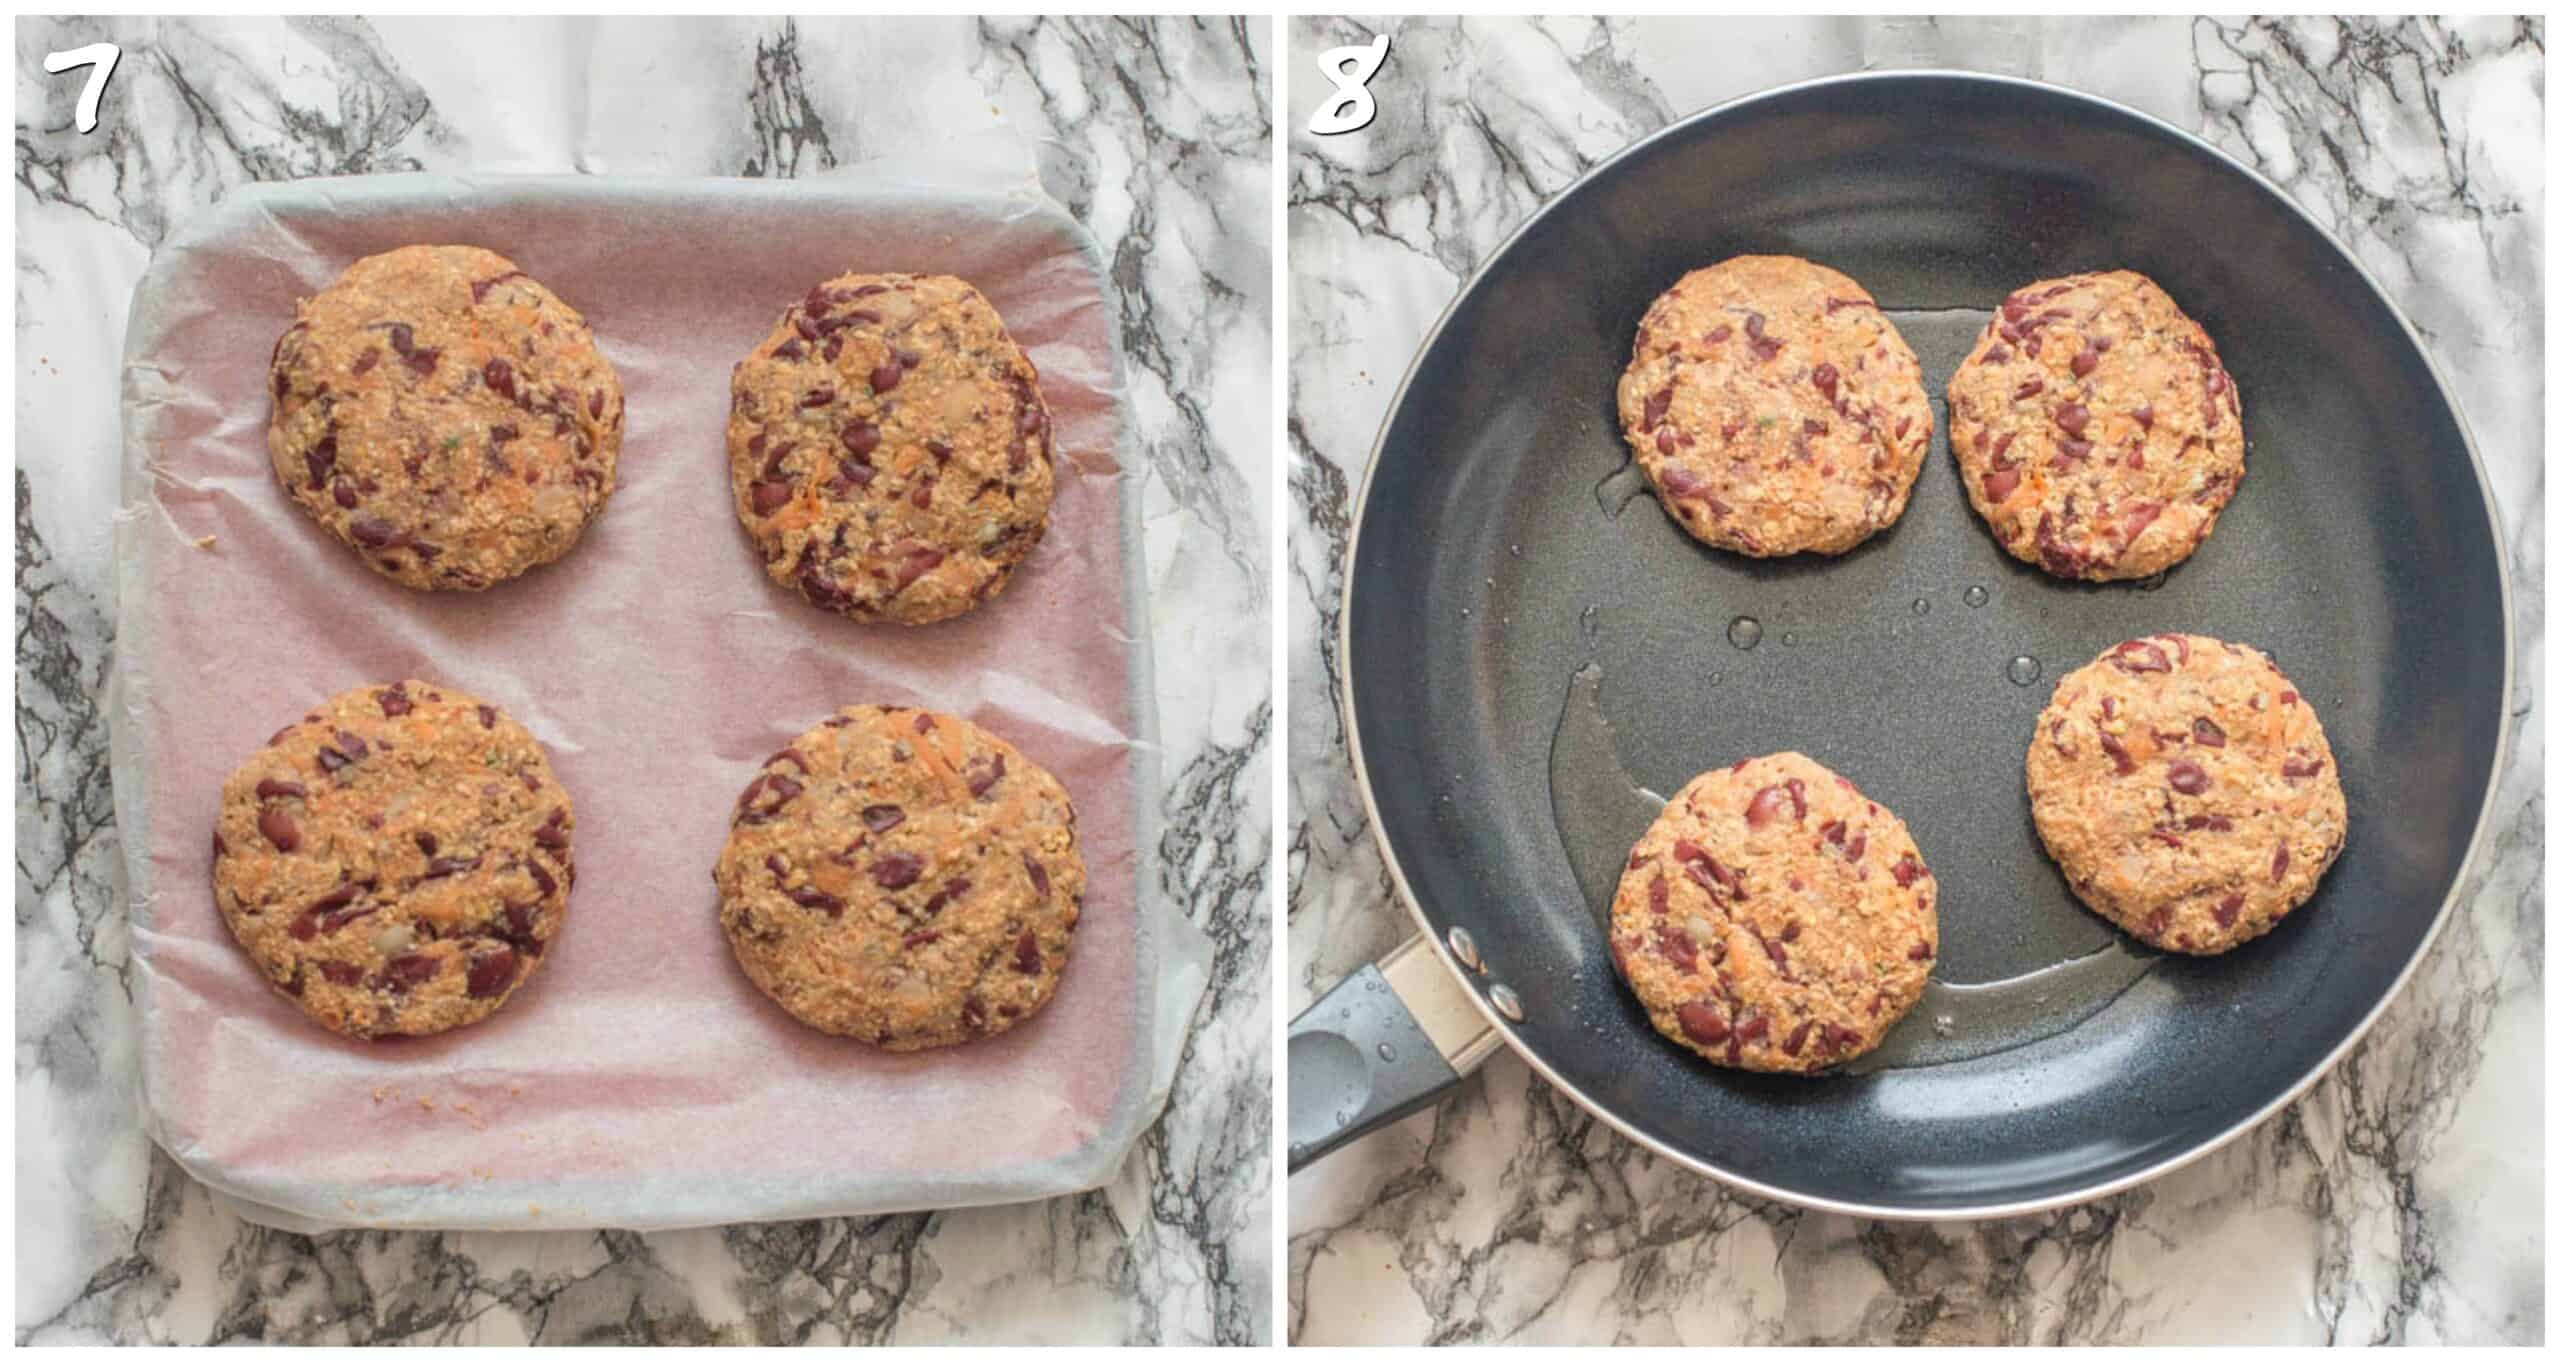 steps 7-8 making the patties and frying them